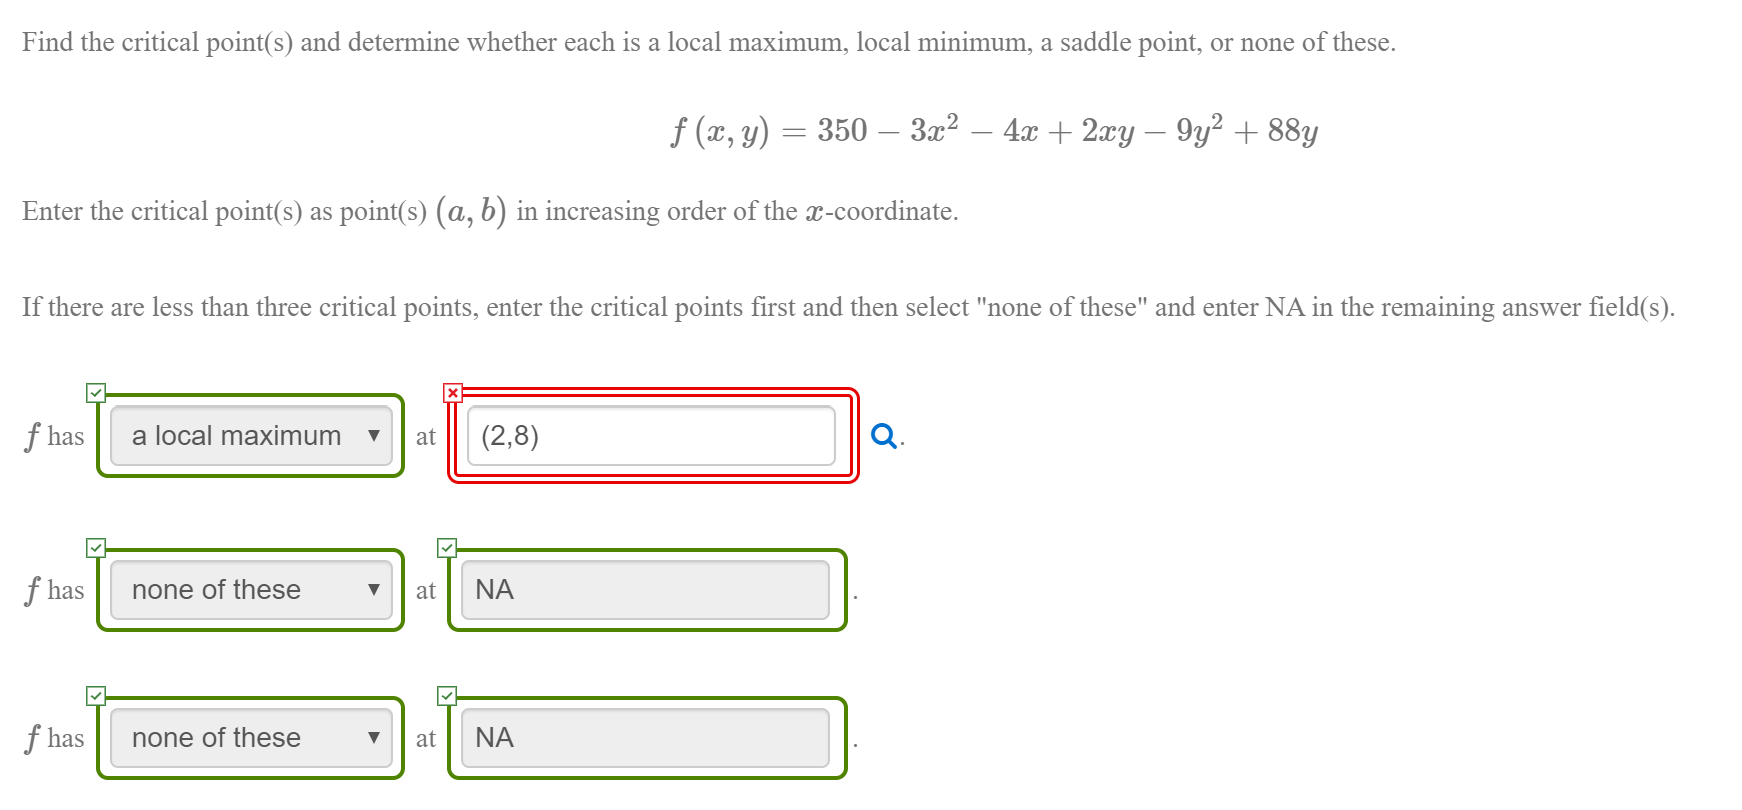 Find the critical point(s) and determine whether each is a local maximum, local minimum, a saddle point, or none of these. f